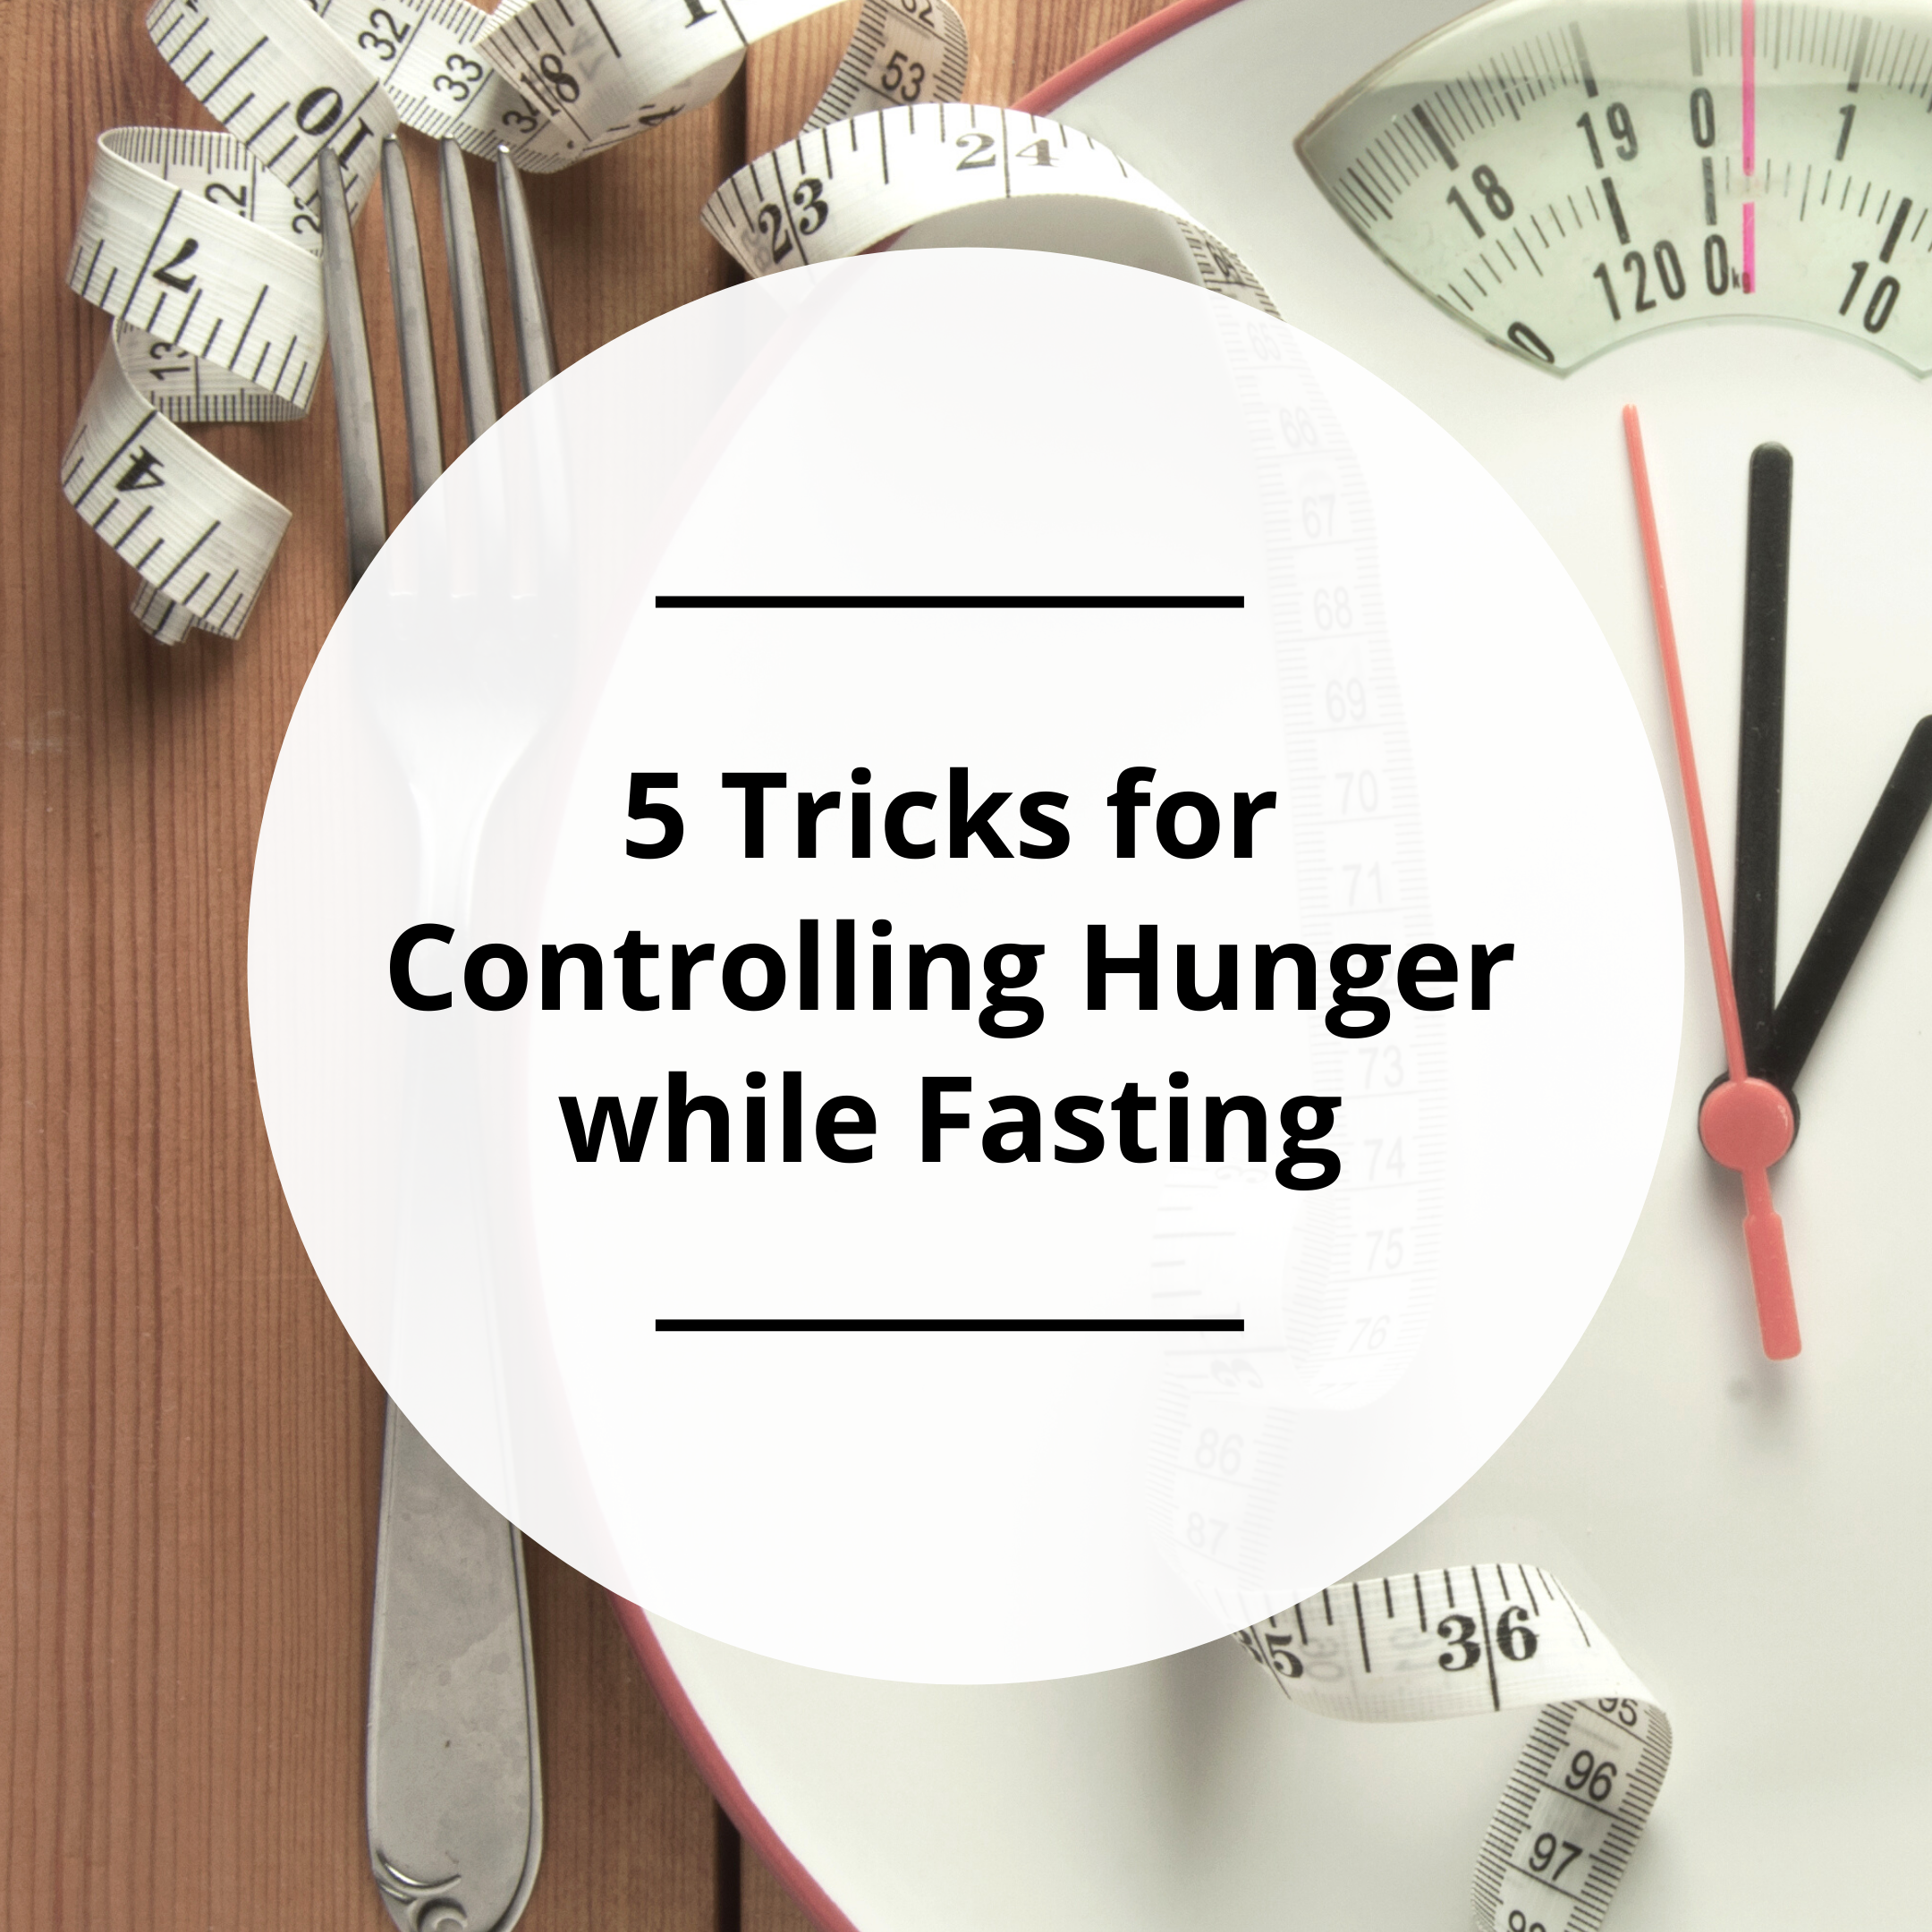 5 Tricks for Controlling Hunger While Fasting